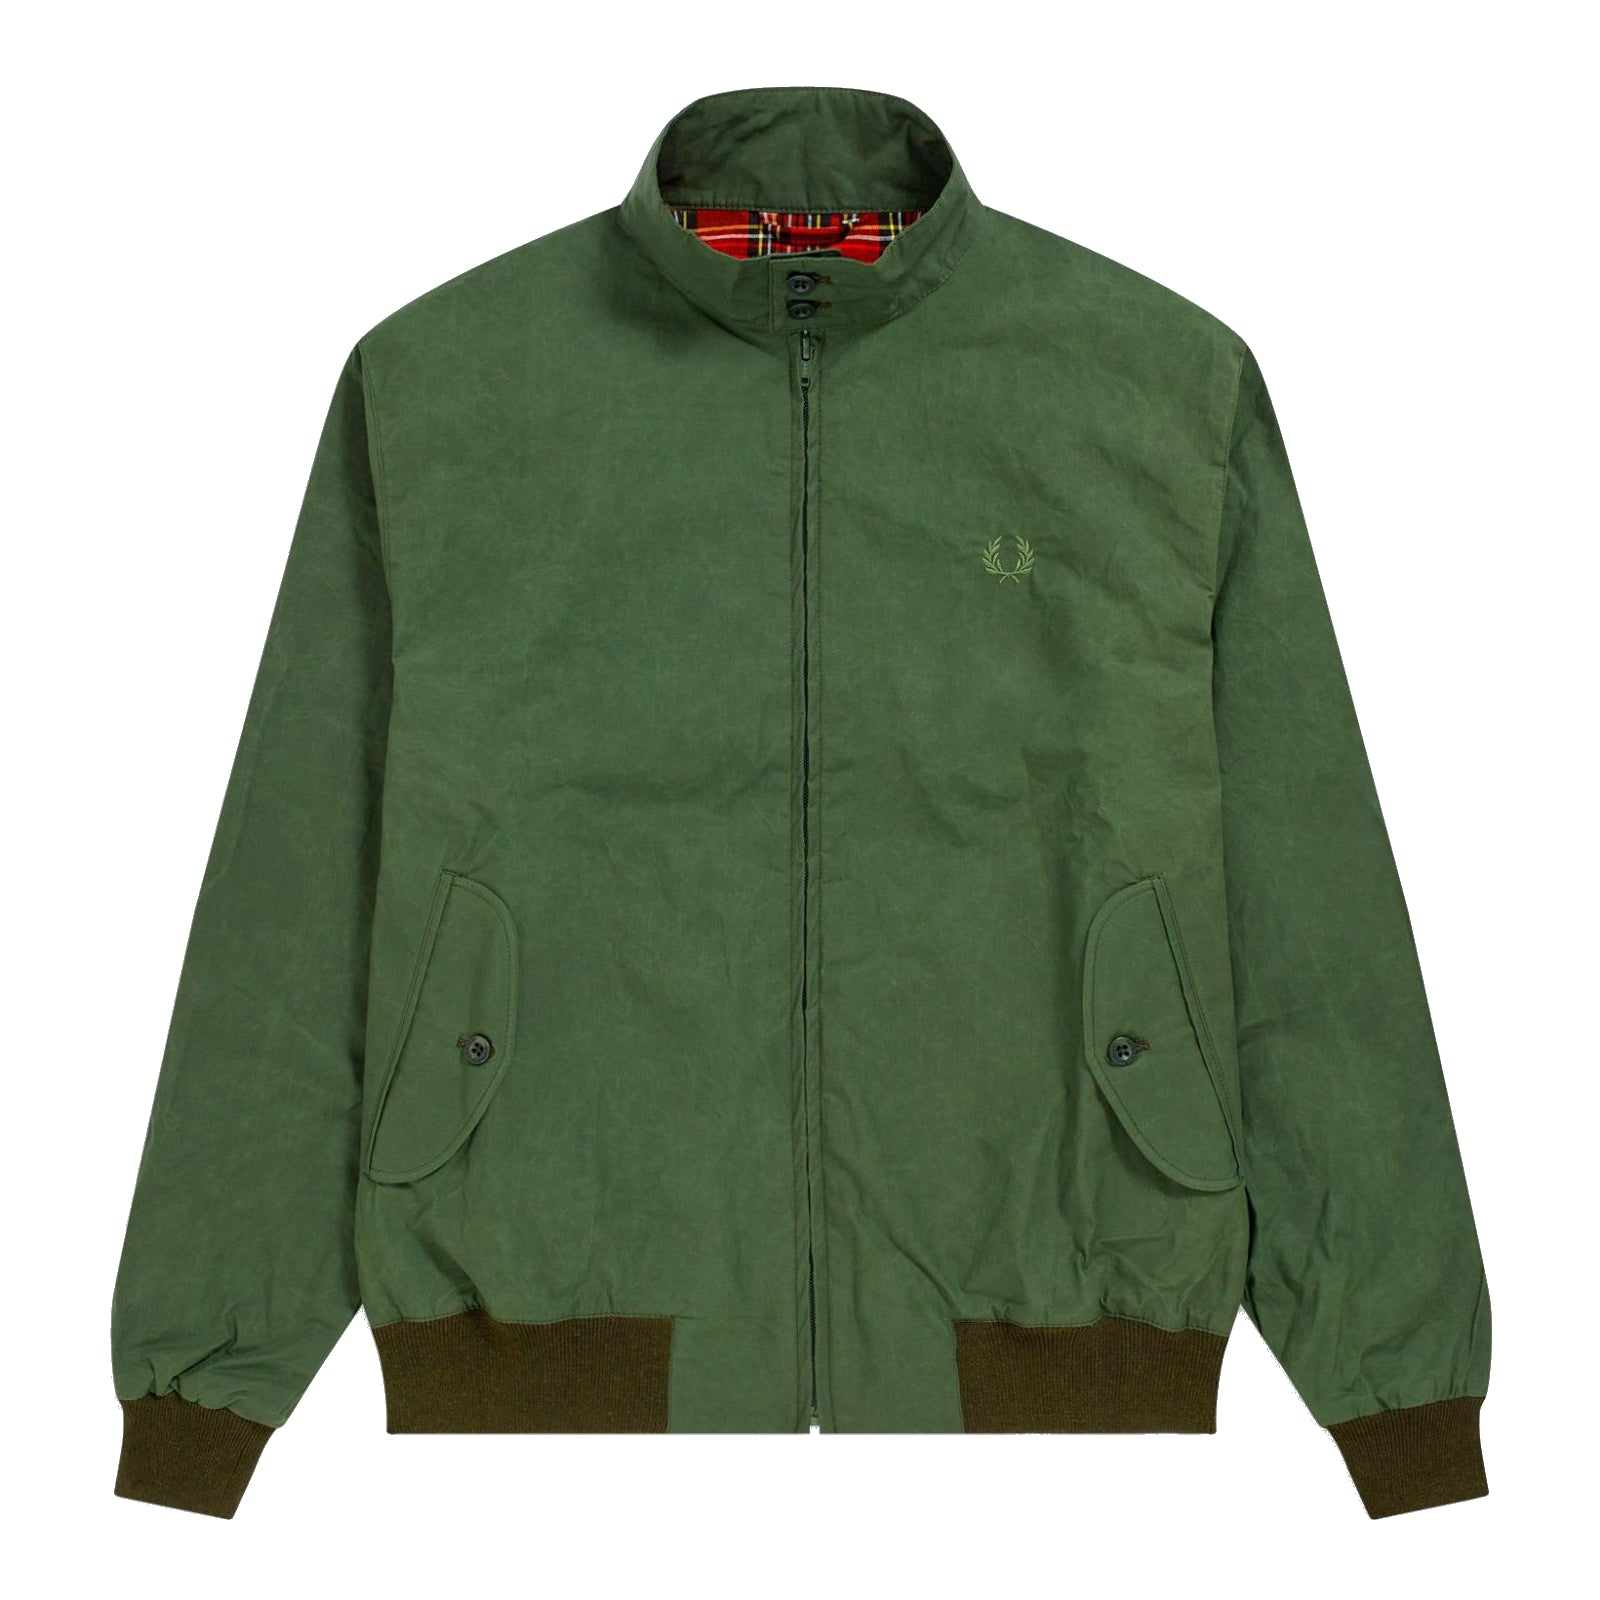 Fred Perry Made in England gewachste Harrington-Jacke, Olive